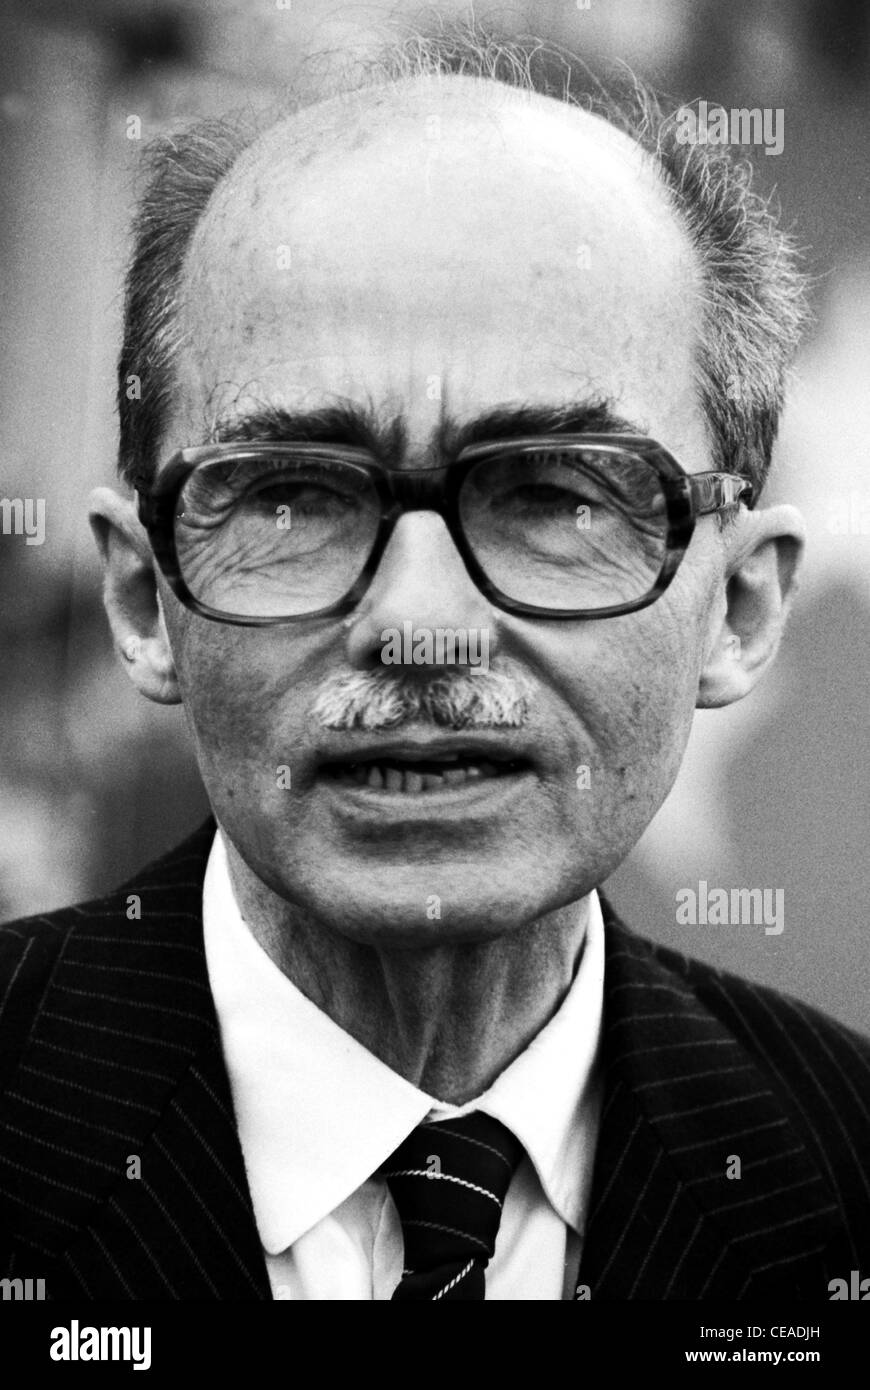 Otto of Habsburg - *20.11.1912 - 04.07.2011: Publicist and politician, son of the last Emporer of Austria and King - Stock Image